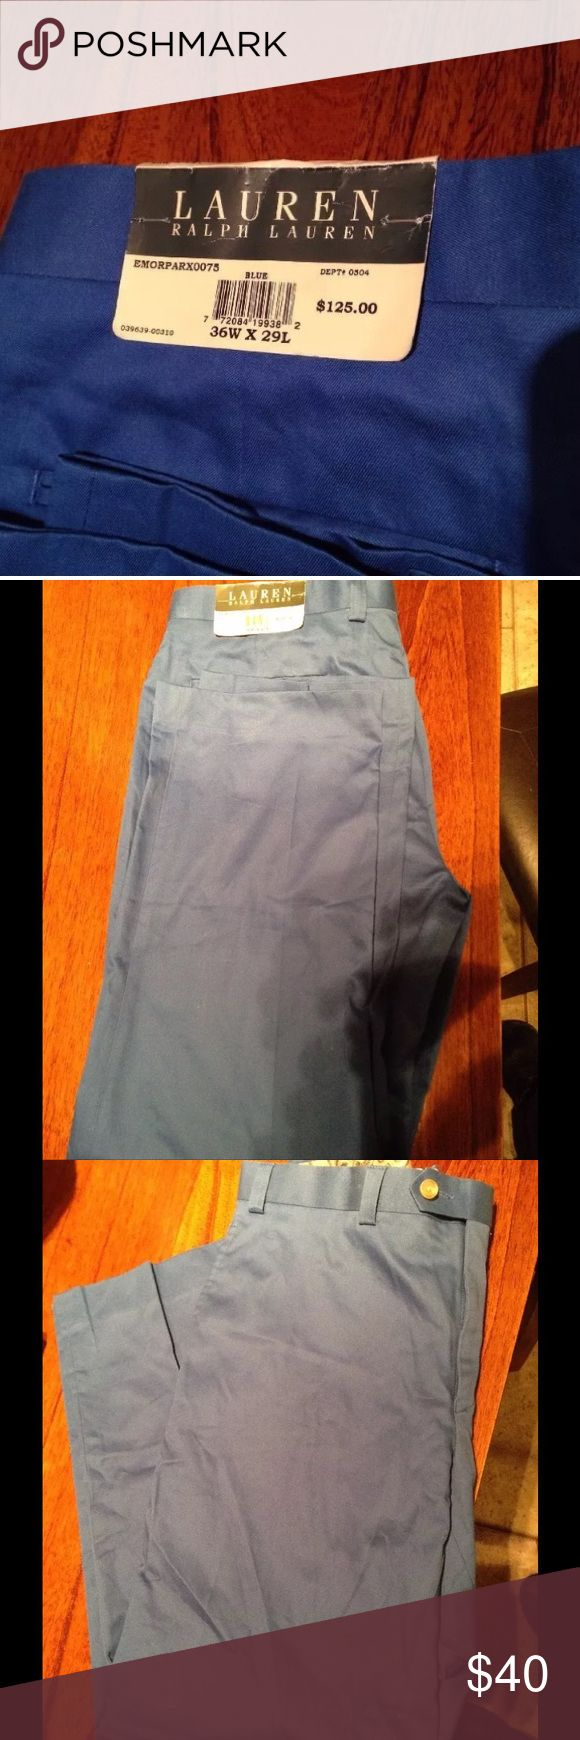 Ralph Lauren 100% cotton Ralph Lauren 100% Cotton Chino Blue Mens 36x29 NWT. Retail of 125.00. Dry clean only. Ralph Lauren Pants Chinos & Khakis